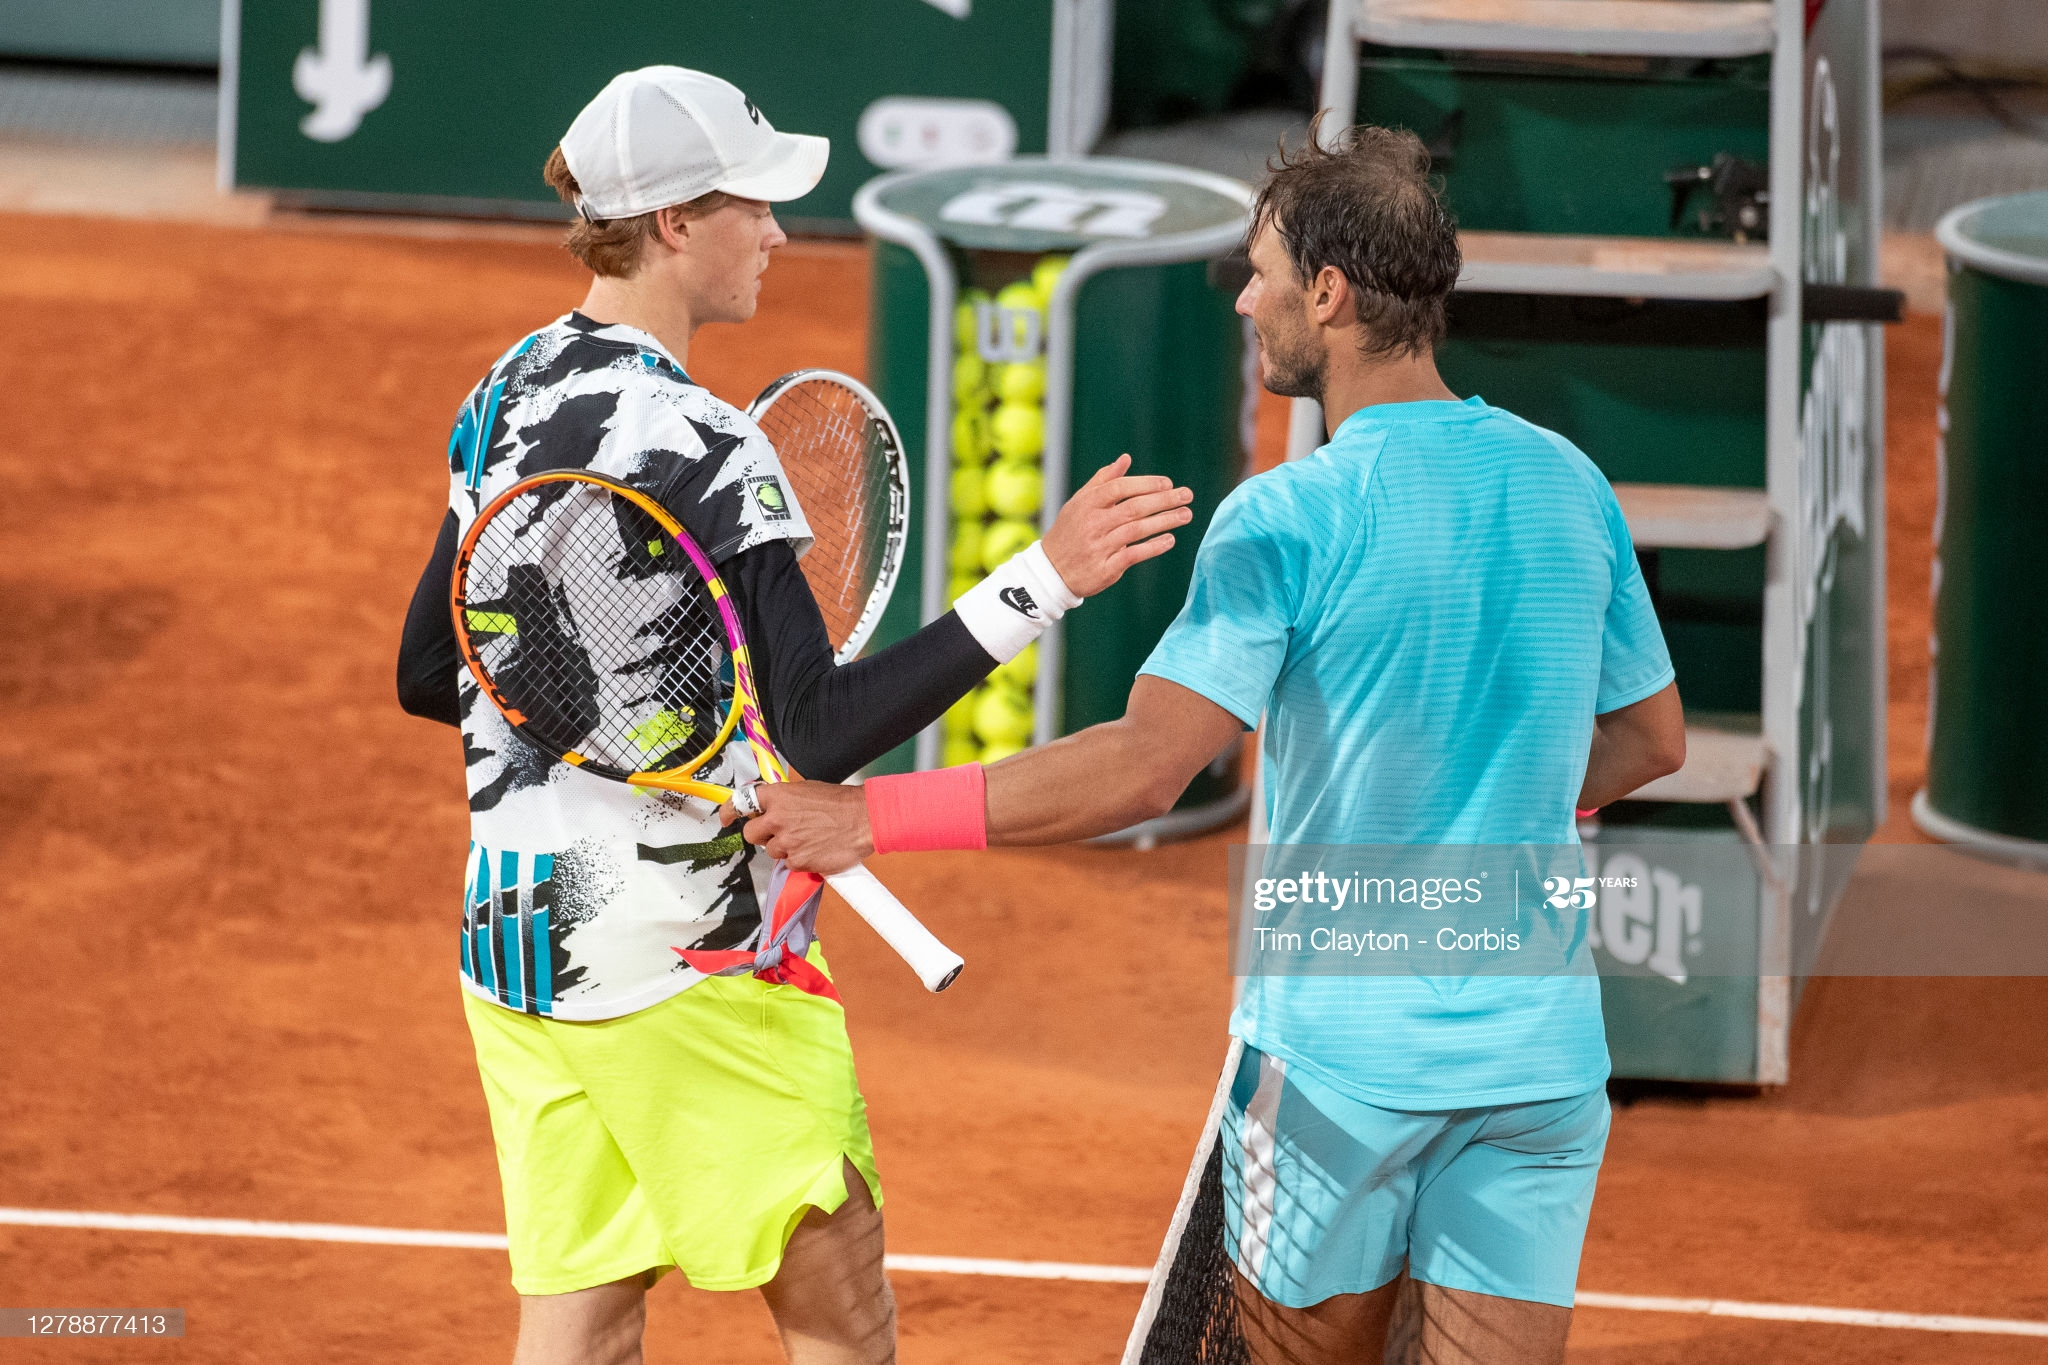 nadal sinner day 10 french open 2020